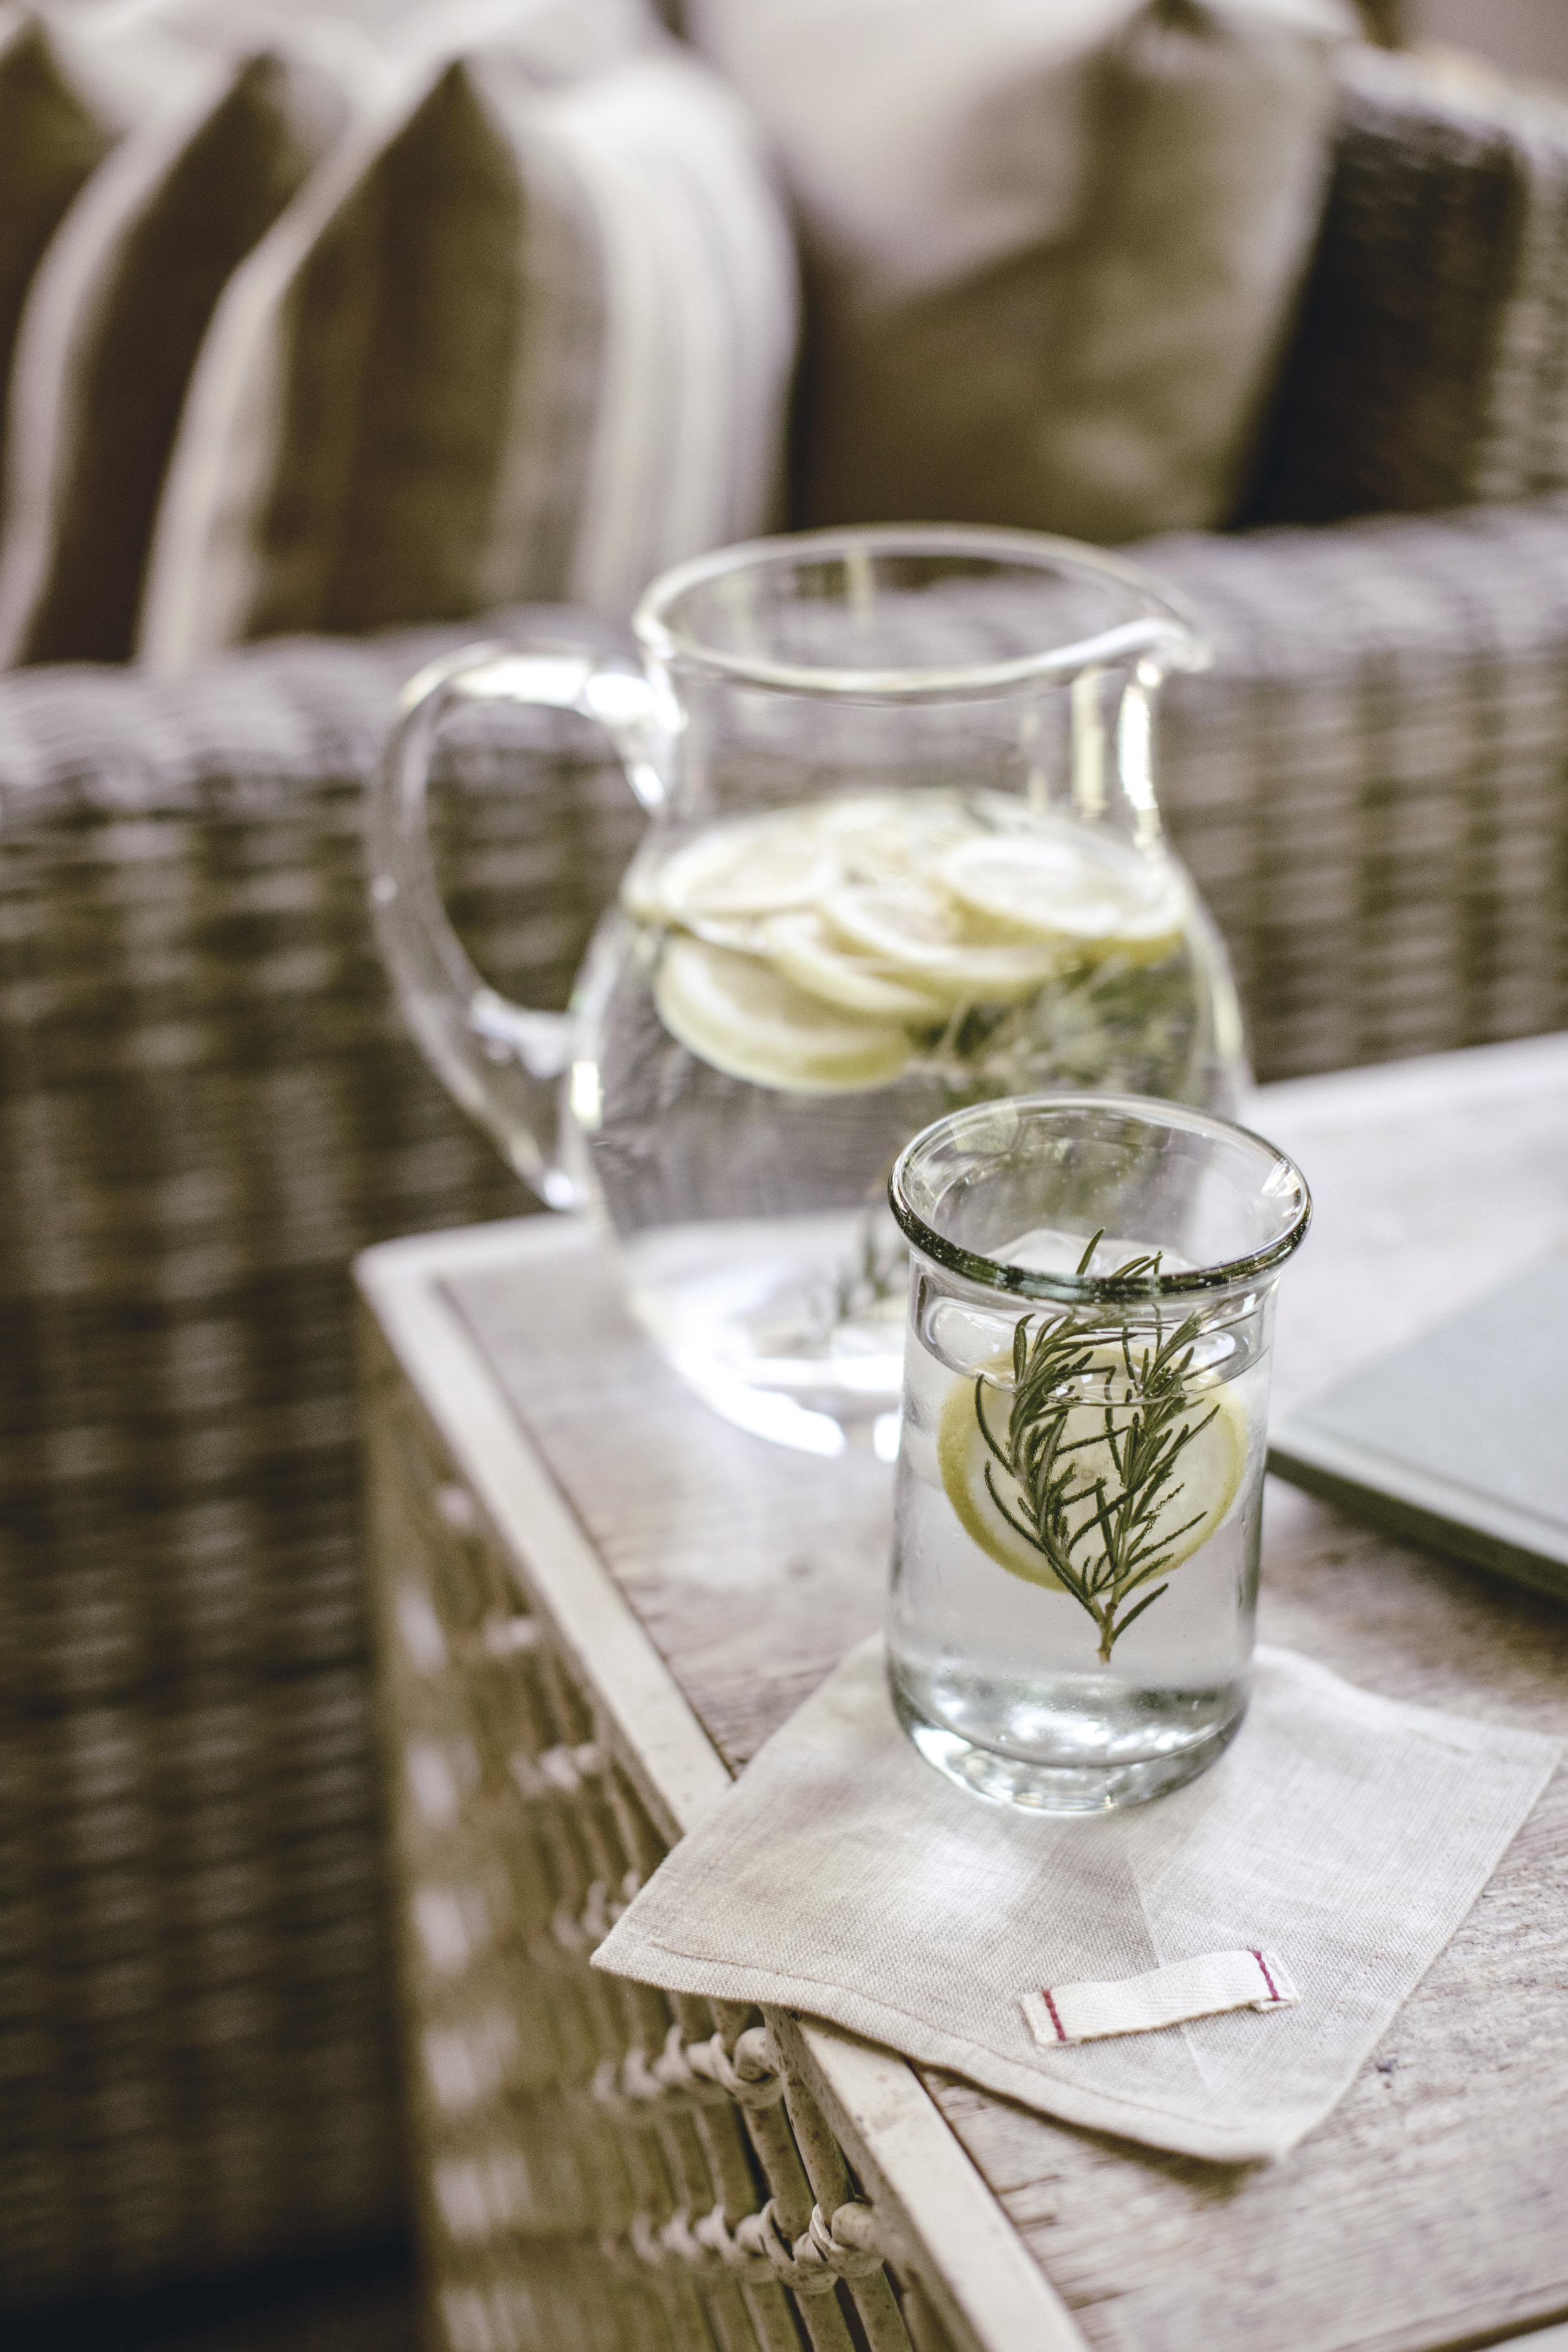 glass pitcher of lemon and rosemary flavored water / heirloomed